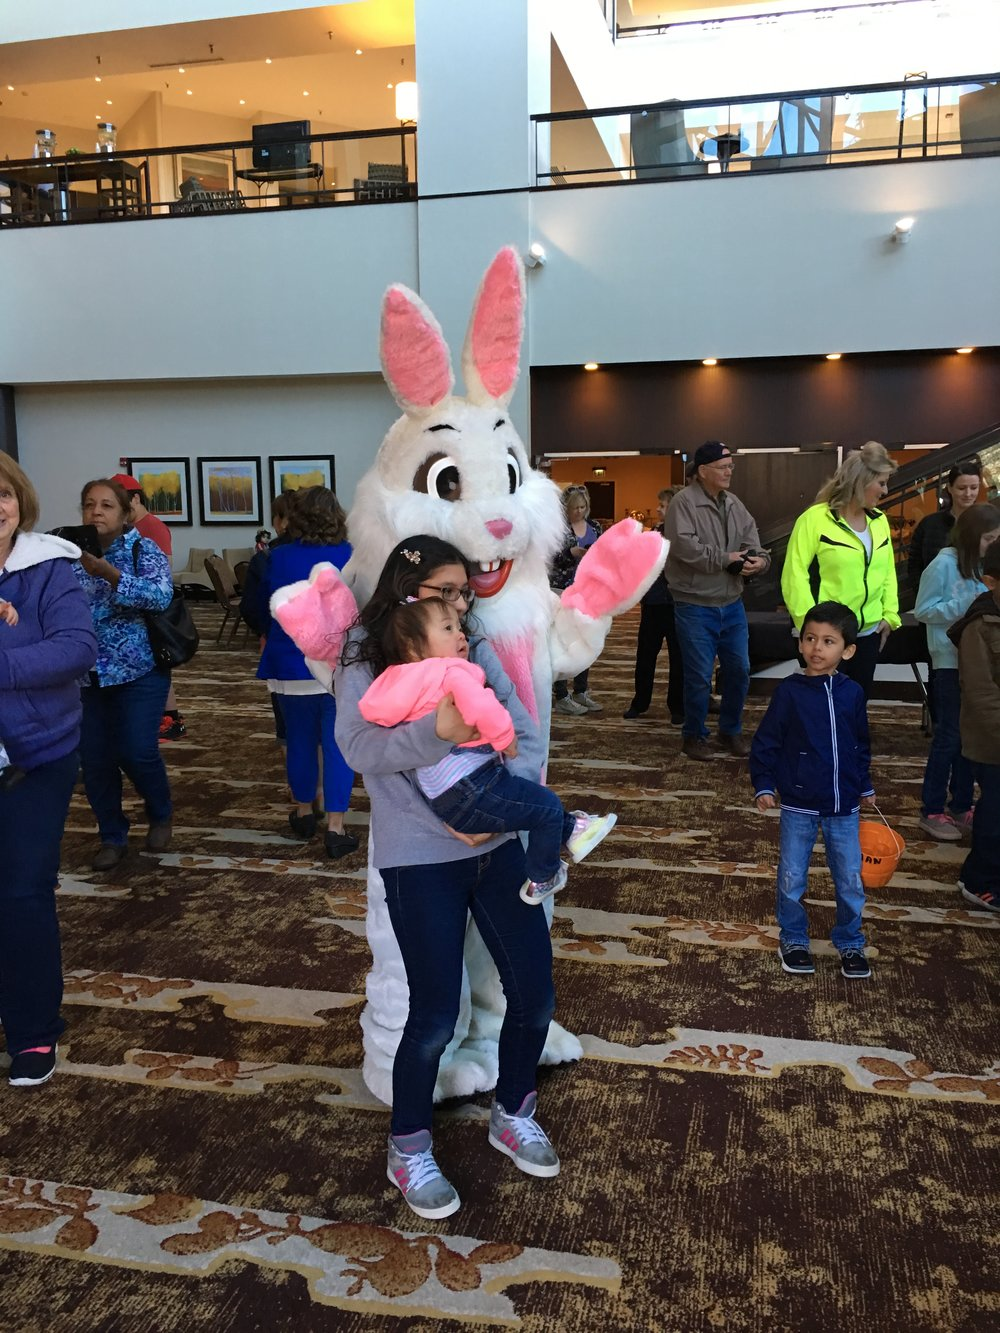 Easter bunny hanging with the kids.